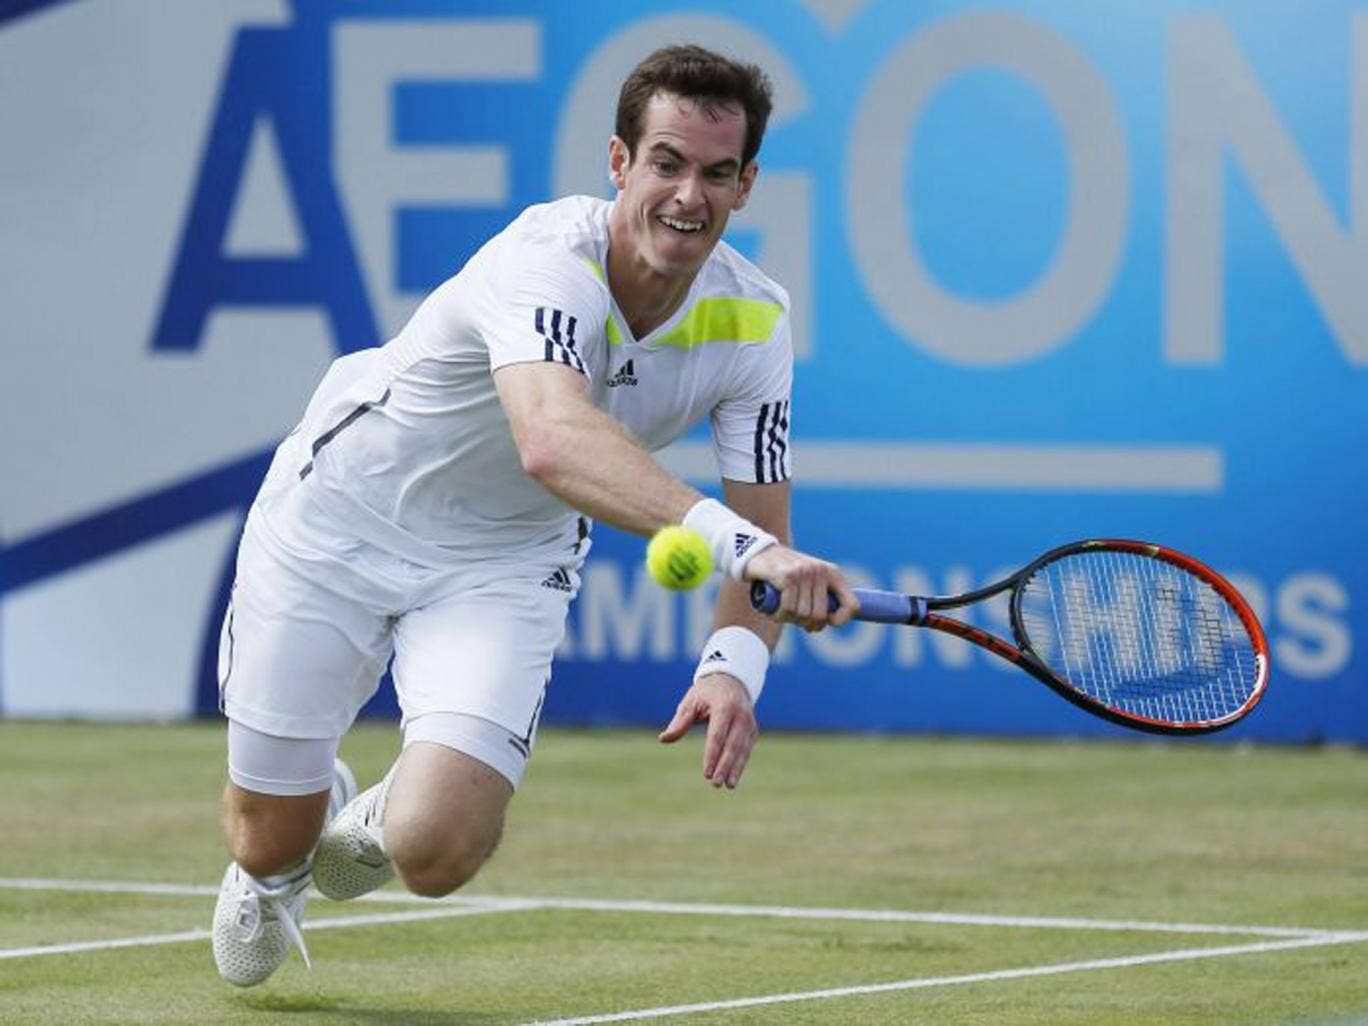 Andy Murray diving to make a shot on his way to a straight-sets victory over the Frenchman, Paul-Henri Mathieu